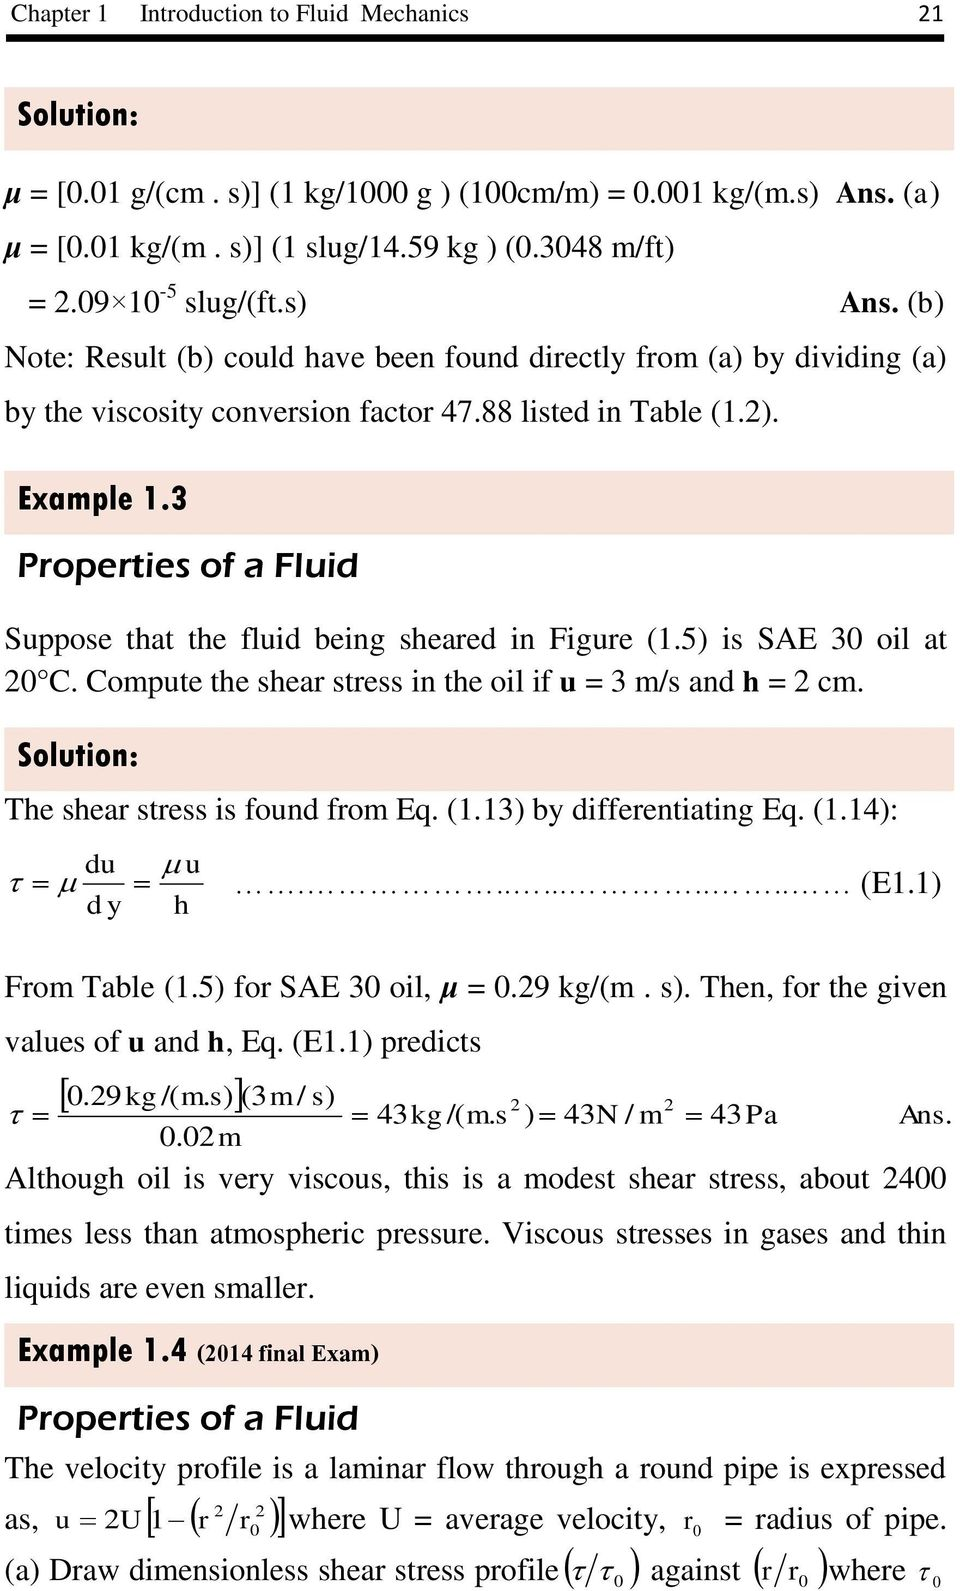 The shea stess is found fom Eq. (1.13) by diffeentiating Eq. (1.14): du u.......... (E1.1) d y h Fom Table (1.5) fo SAE 3 oil, μ =.9 kg/(m. s). Then, fo the given values of u and h, Eq. (E1.1) pedicts.